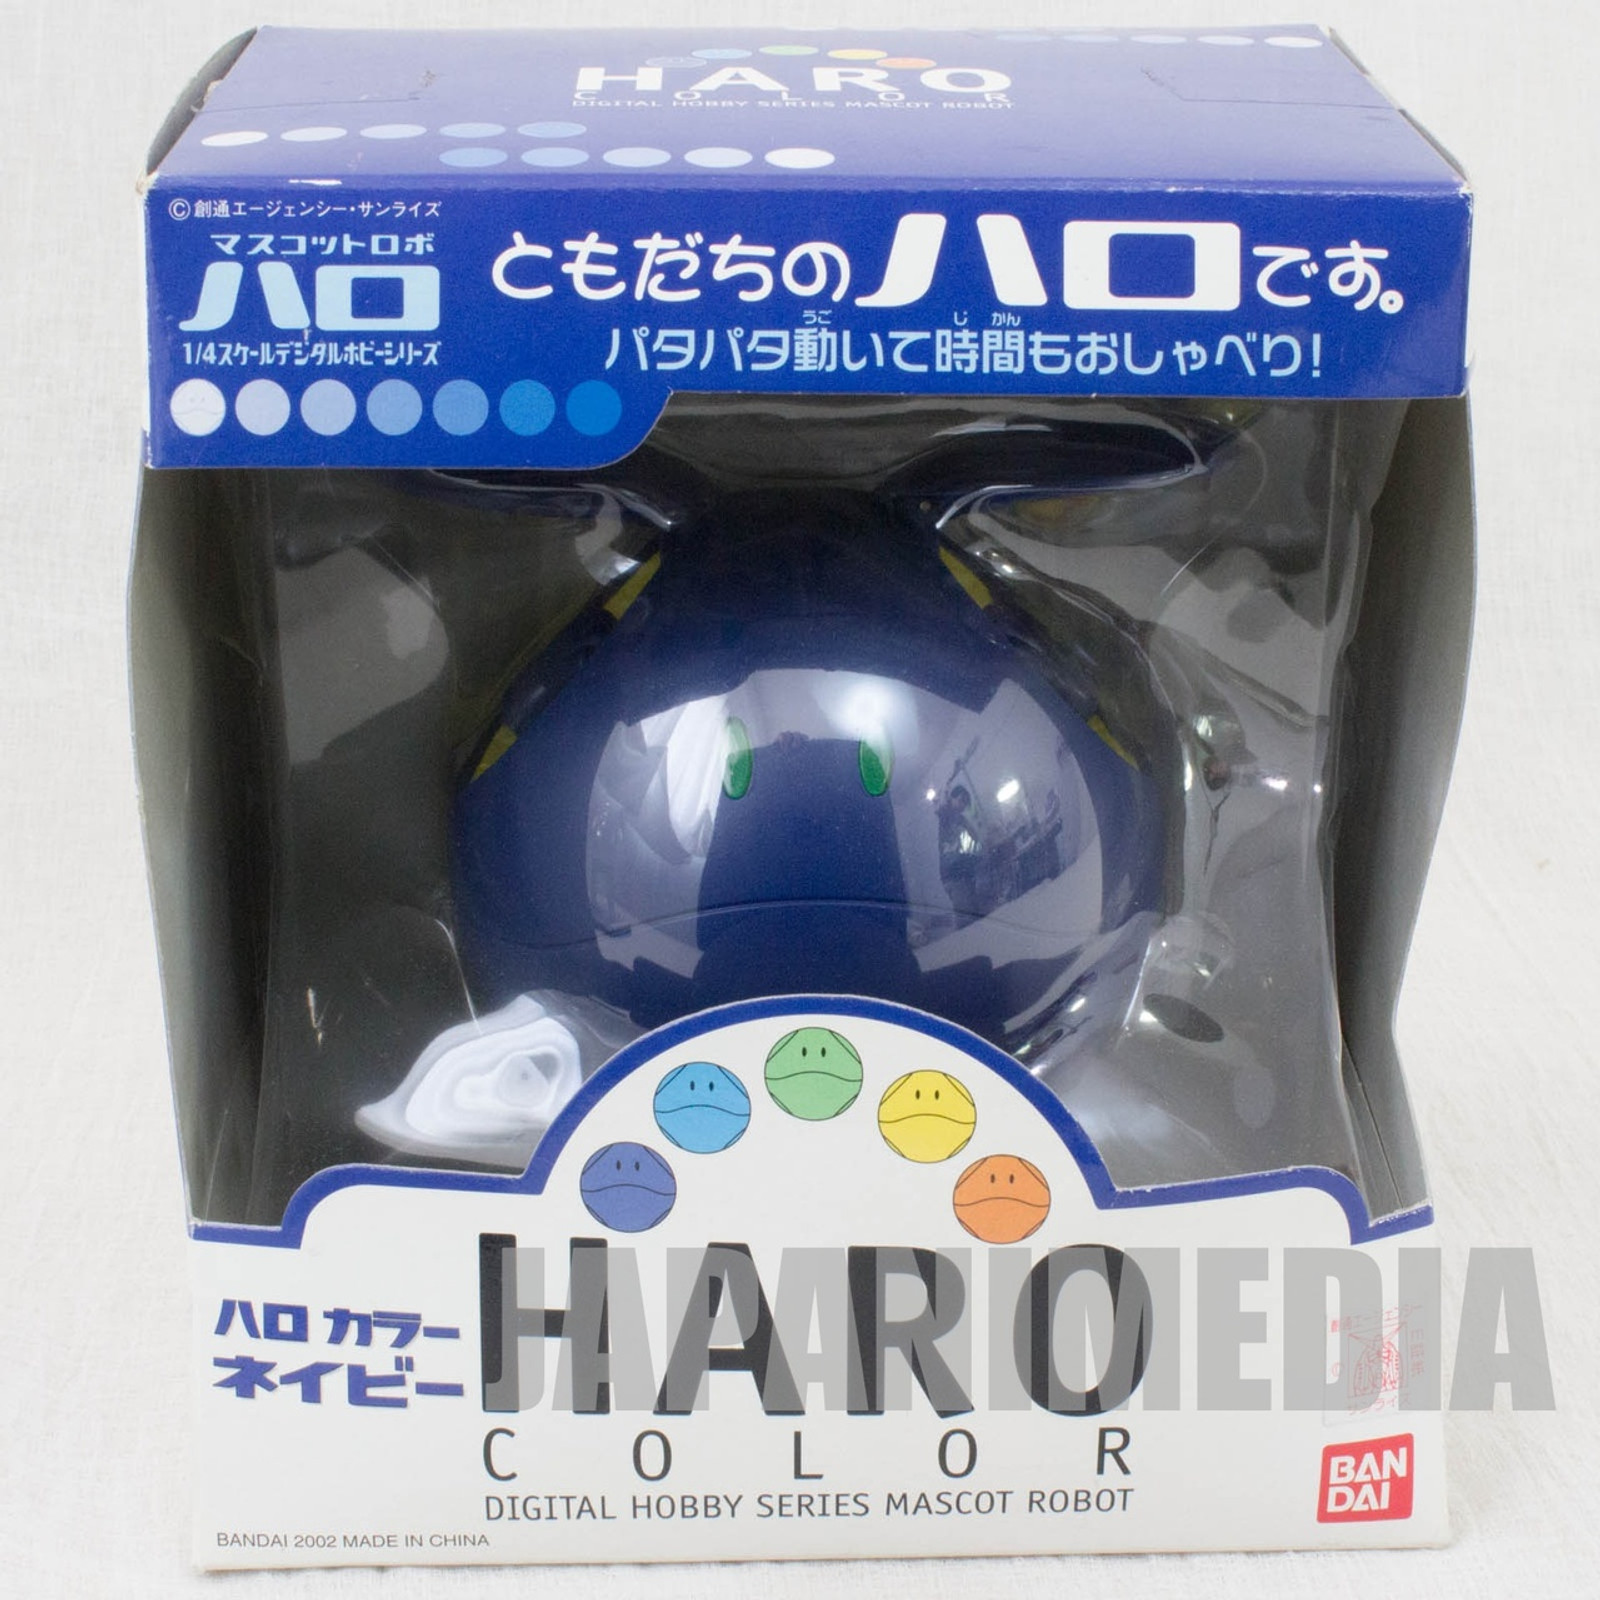 Gundam Mascot Robot HARO Talking Figure Scale 1/4 Navy Bandai JAPAN ANIME